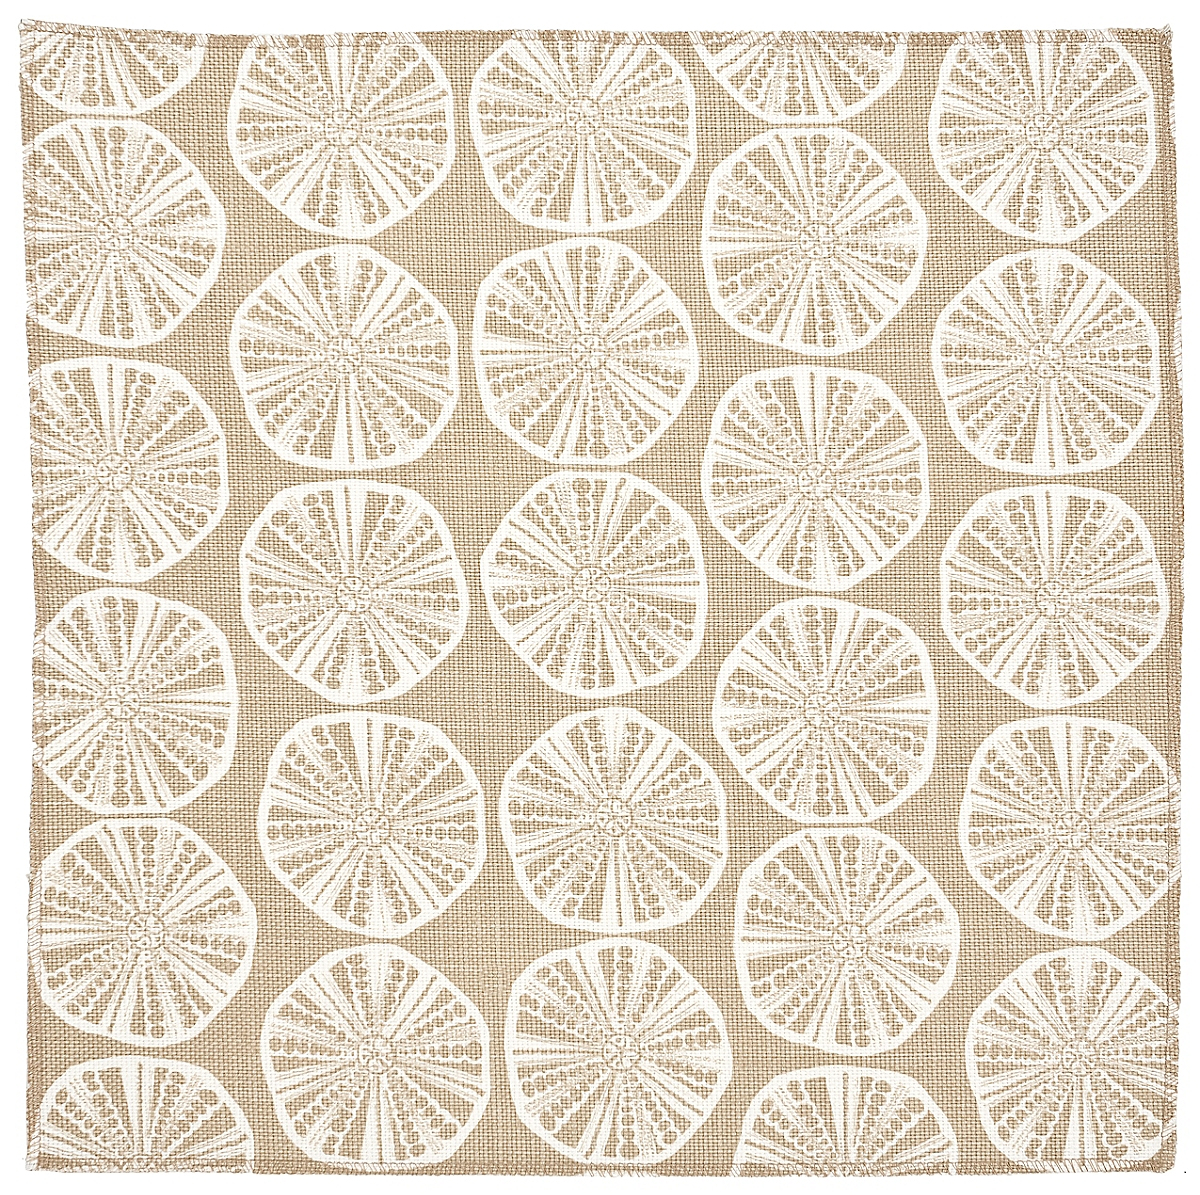 Sea Biscuit: Clay (fabric yardage)